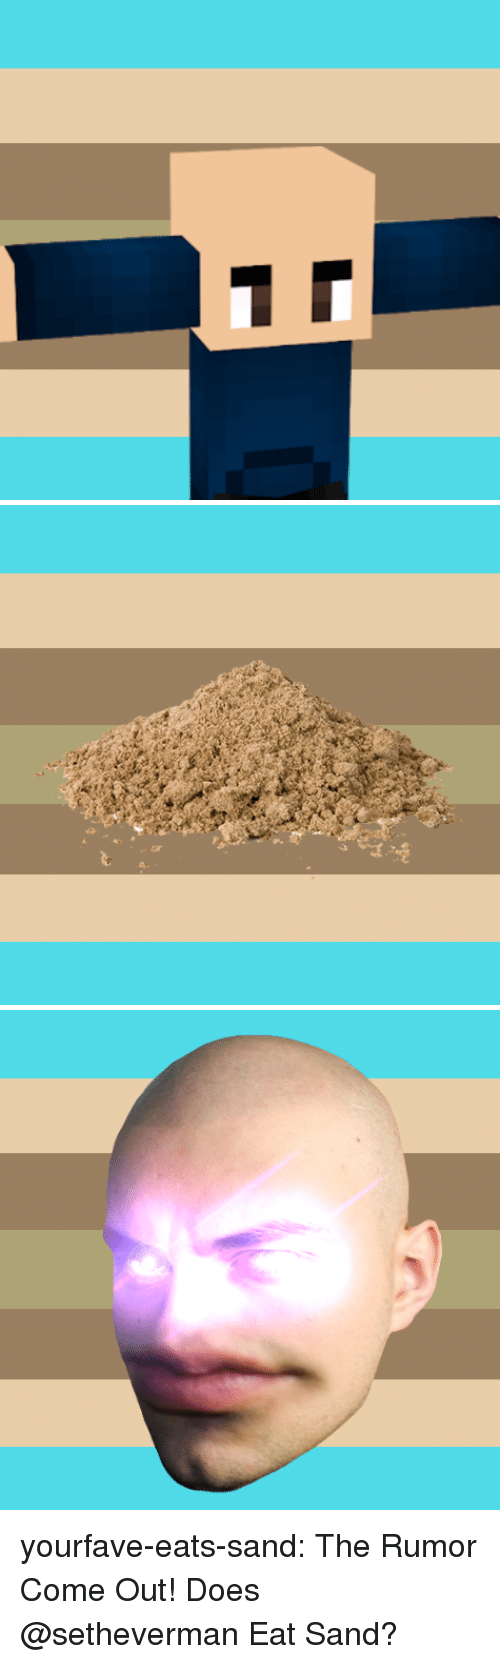 Tumblr, Blog, and Com: yourfave-eats-sand:  The Rumor Come Out! Does @setheverman Eat Sand?